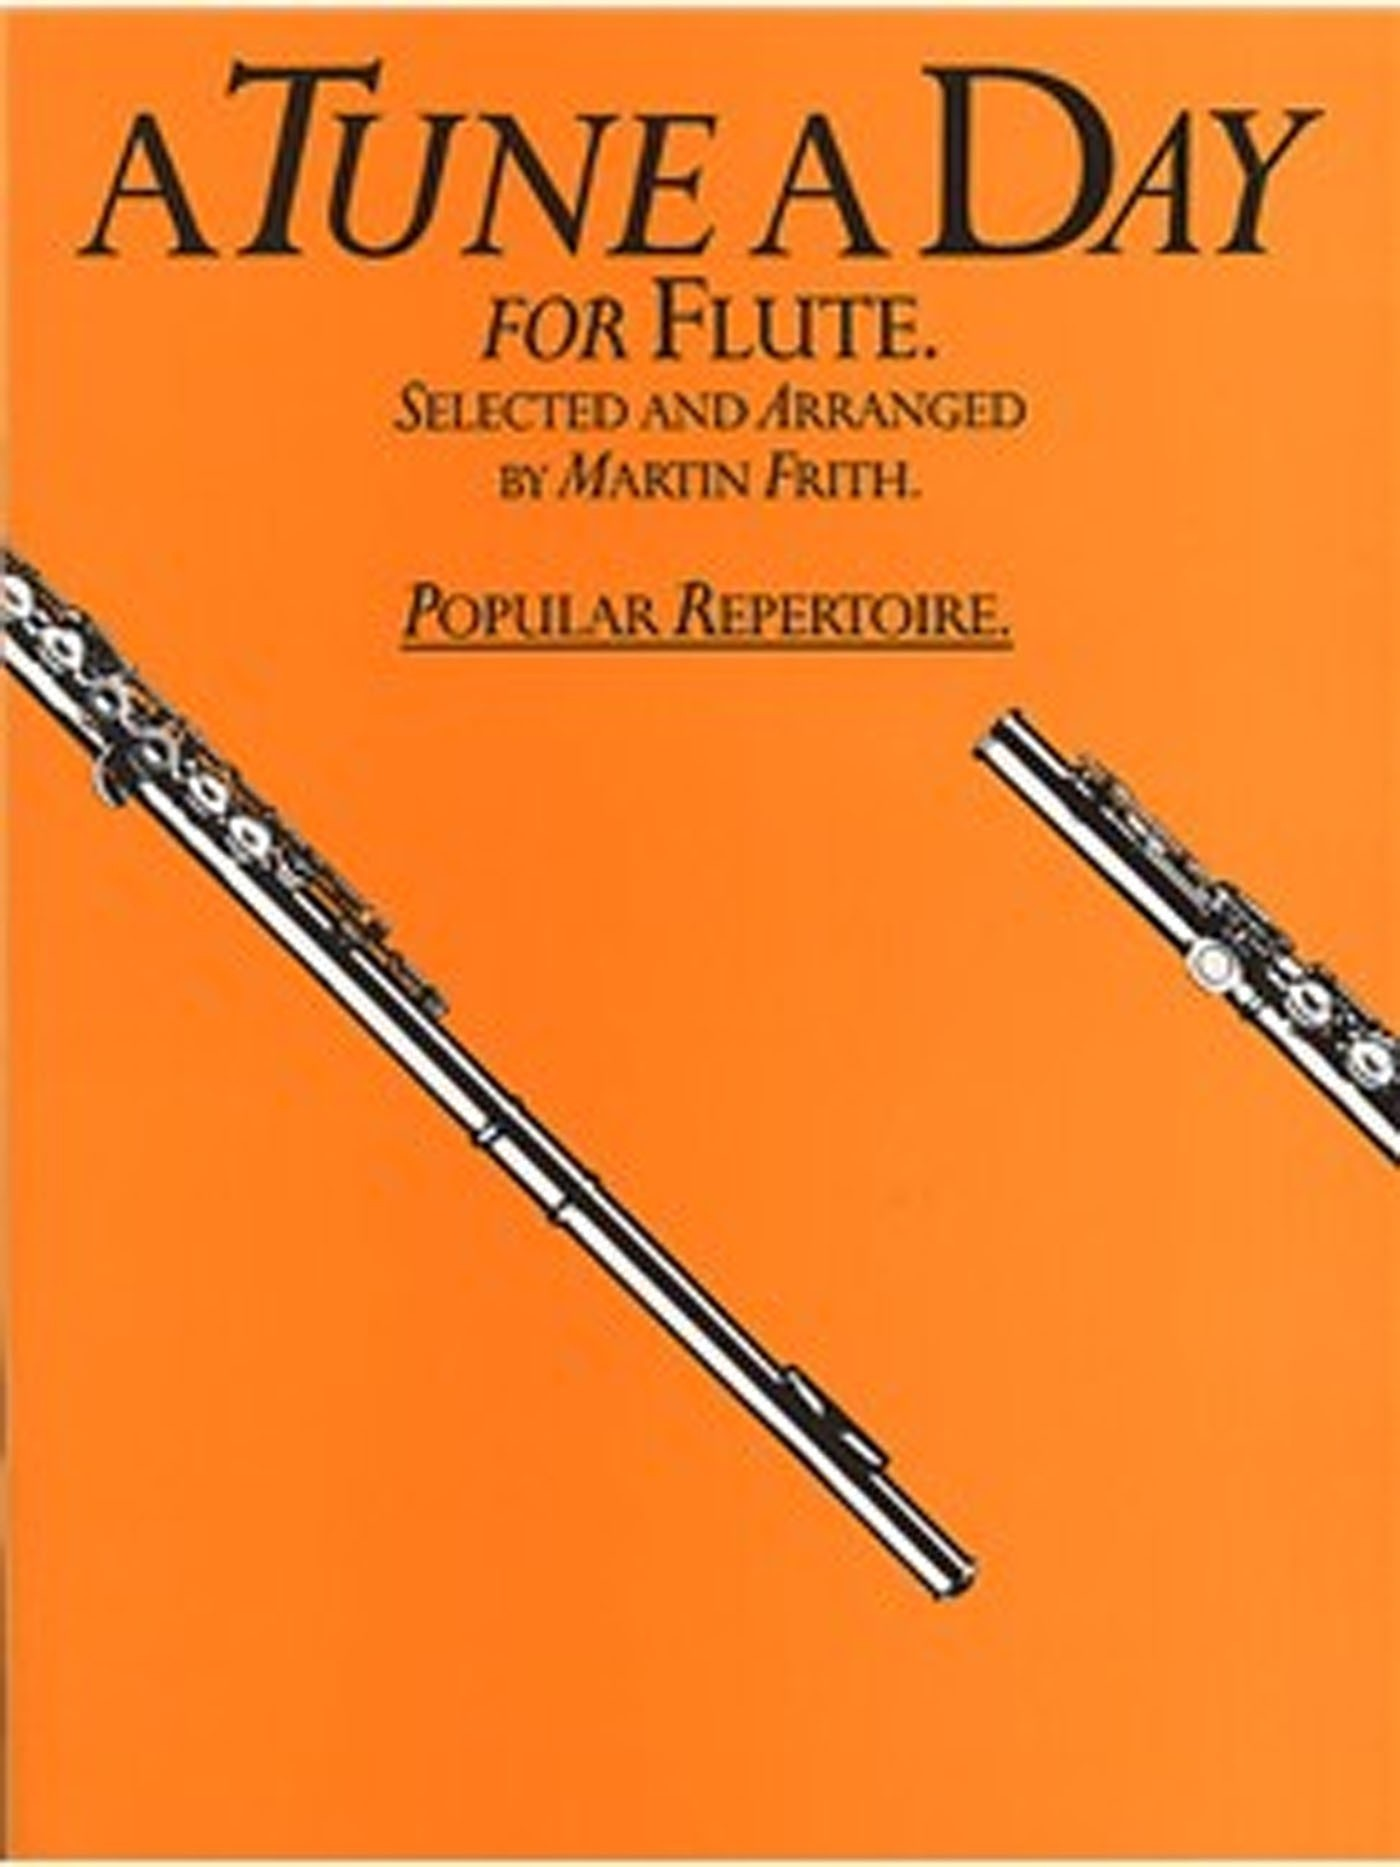 A Tune A Day For Flute Popular Repertoire Book TV Disney Shows S133